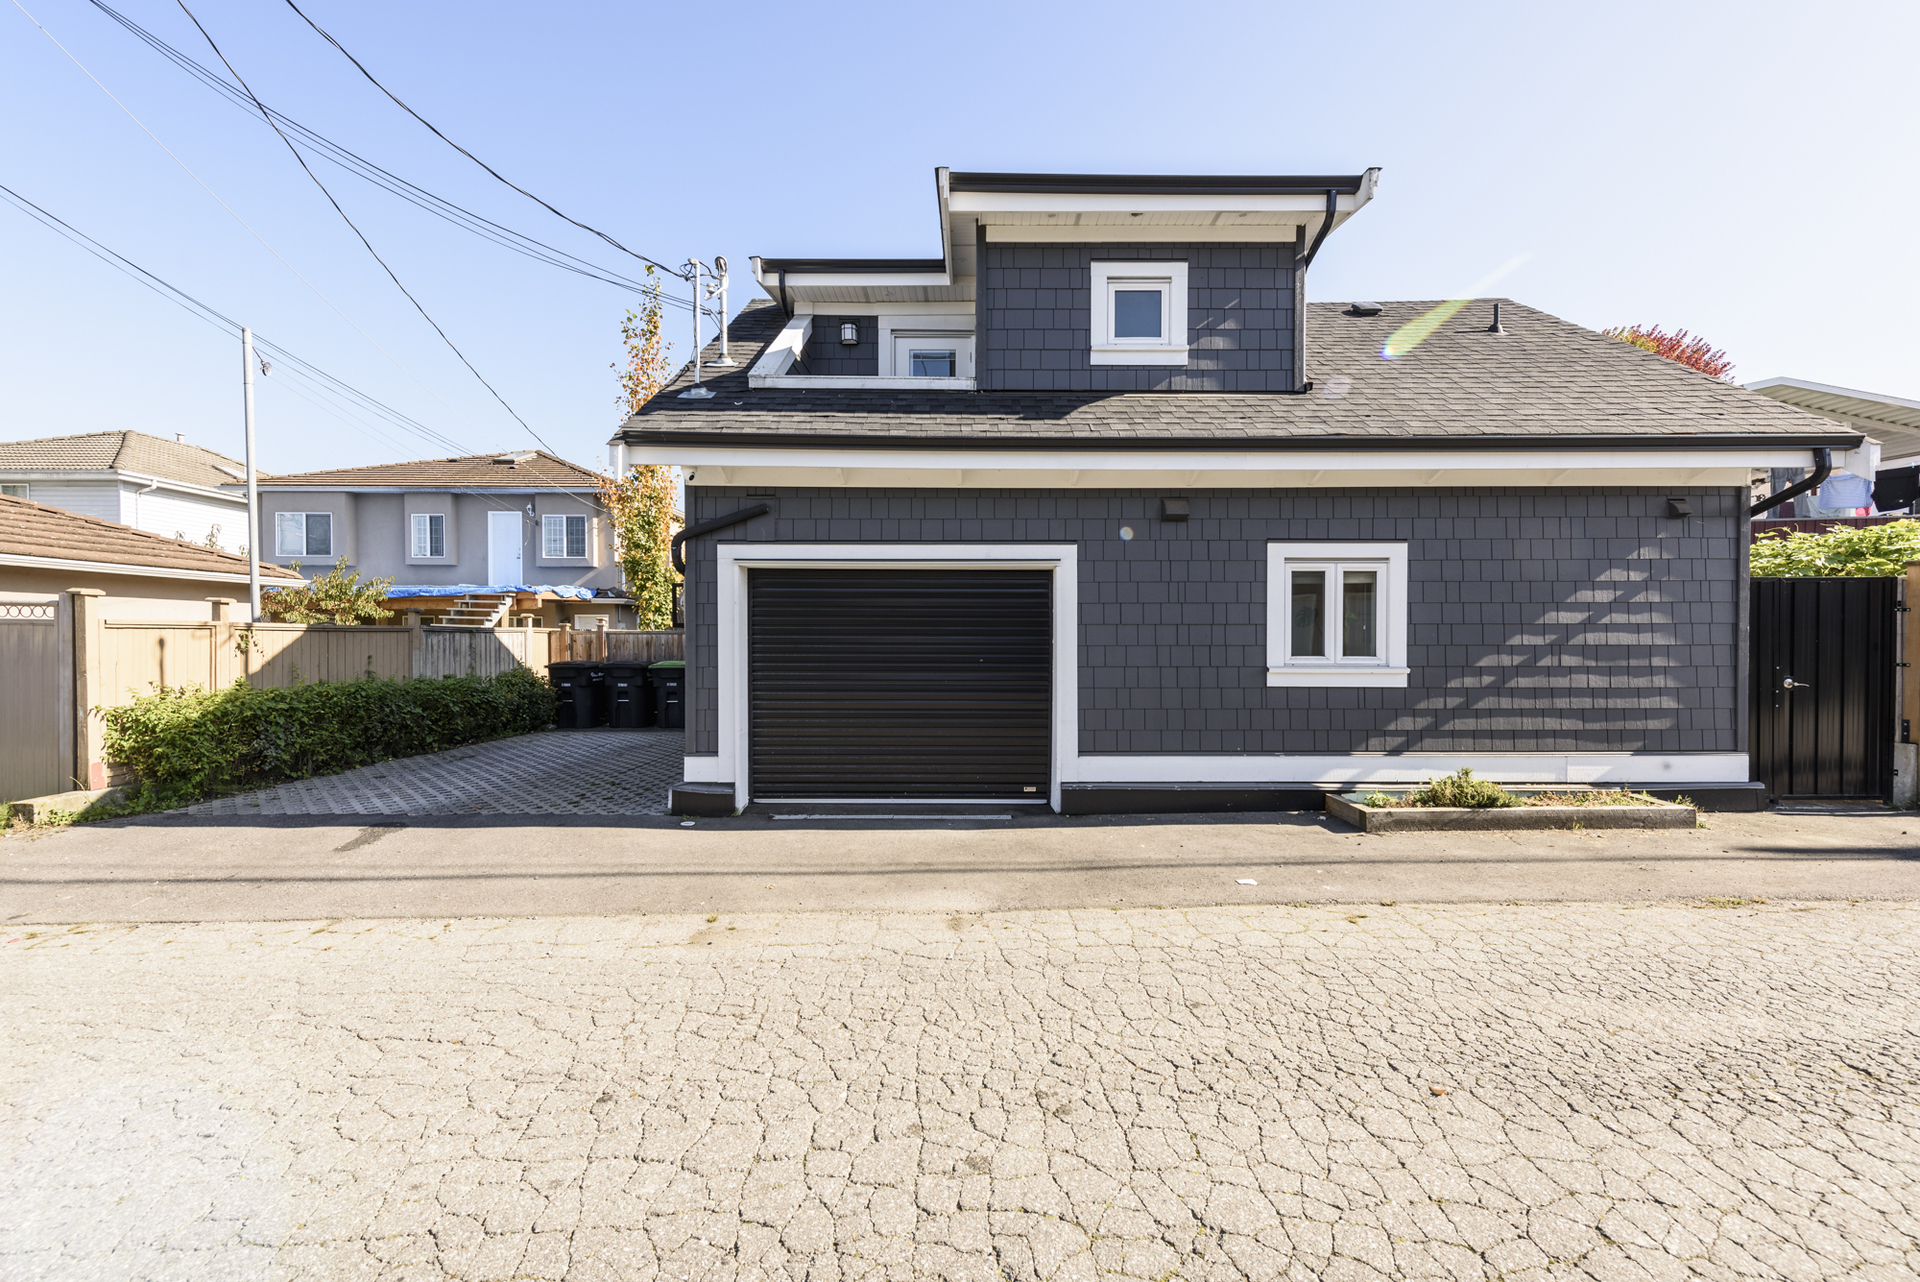 4609-culloden-ste-high-res-162 at 4609 Culloden Street, Knight, Vancouver East